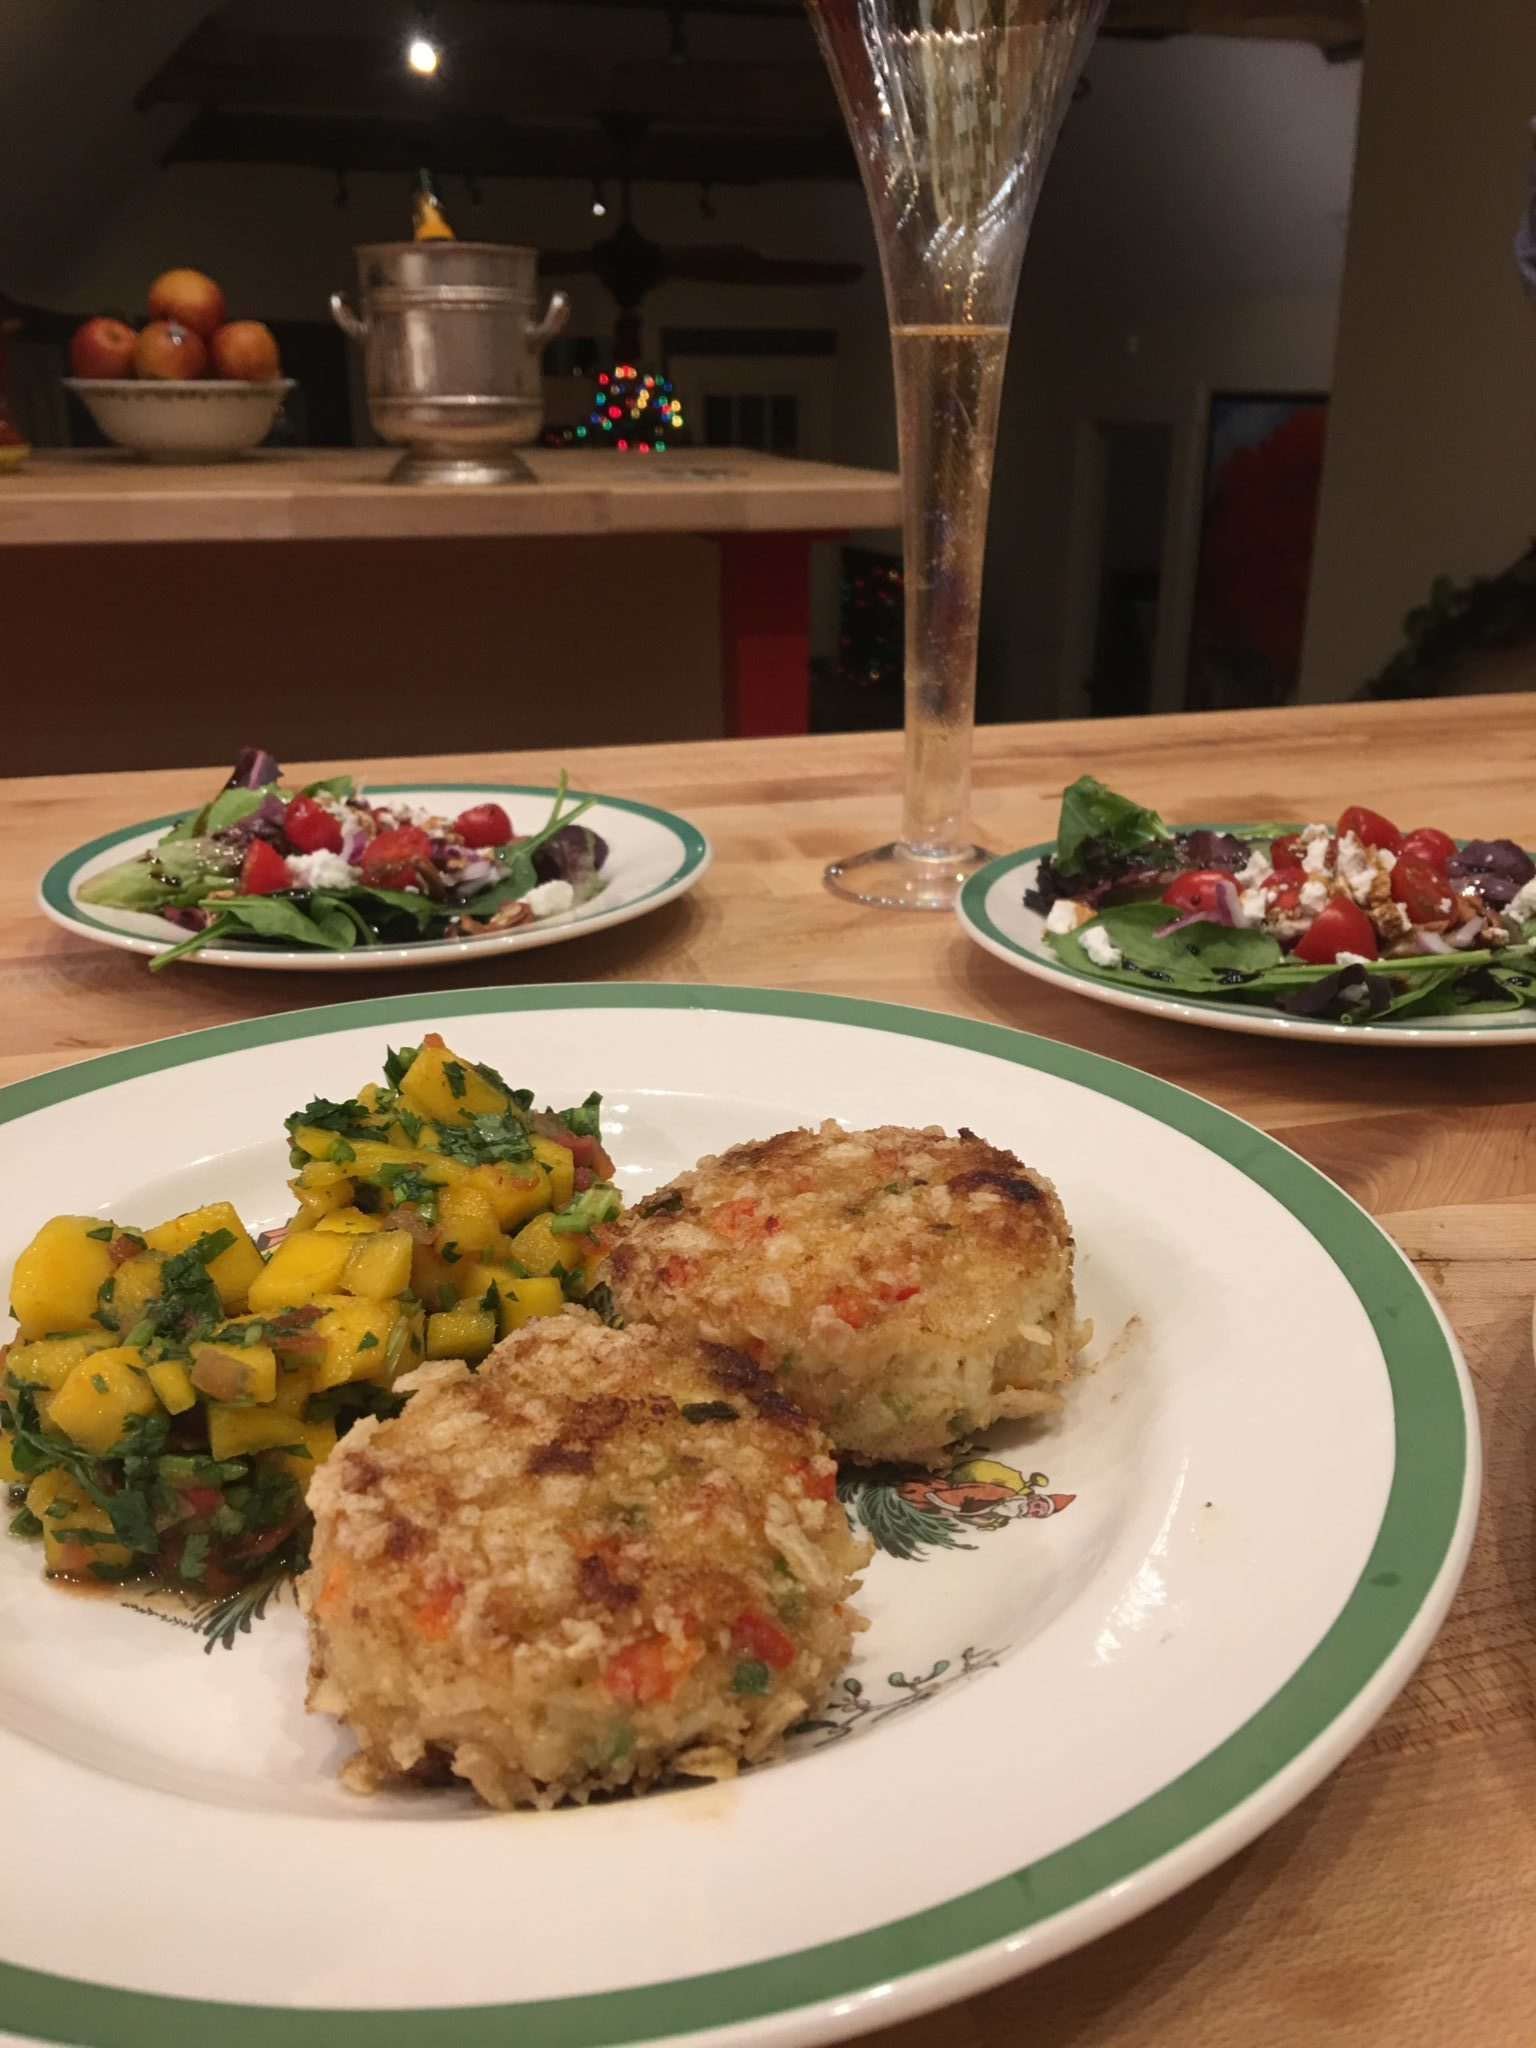 Crab cakes with Mango Salsa